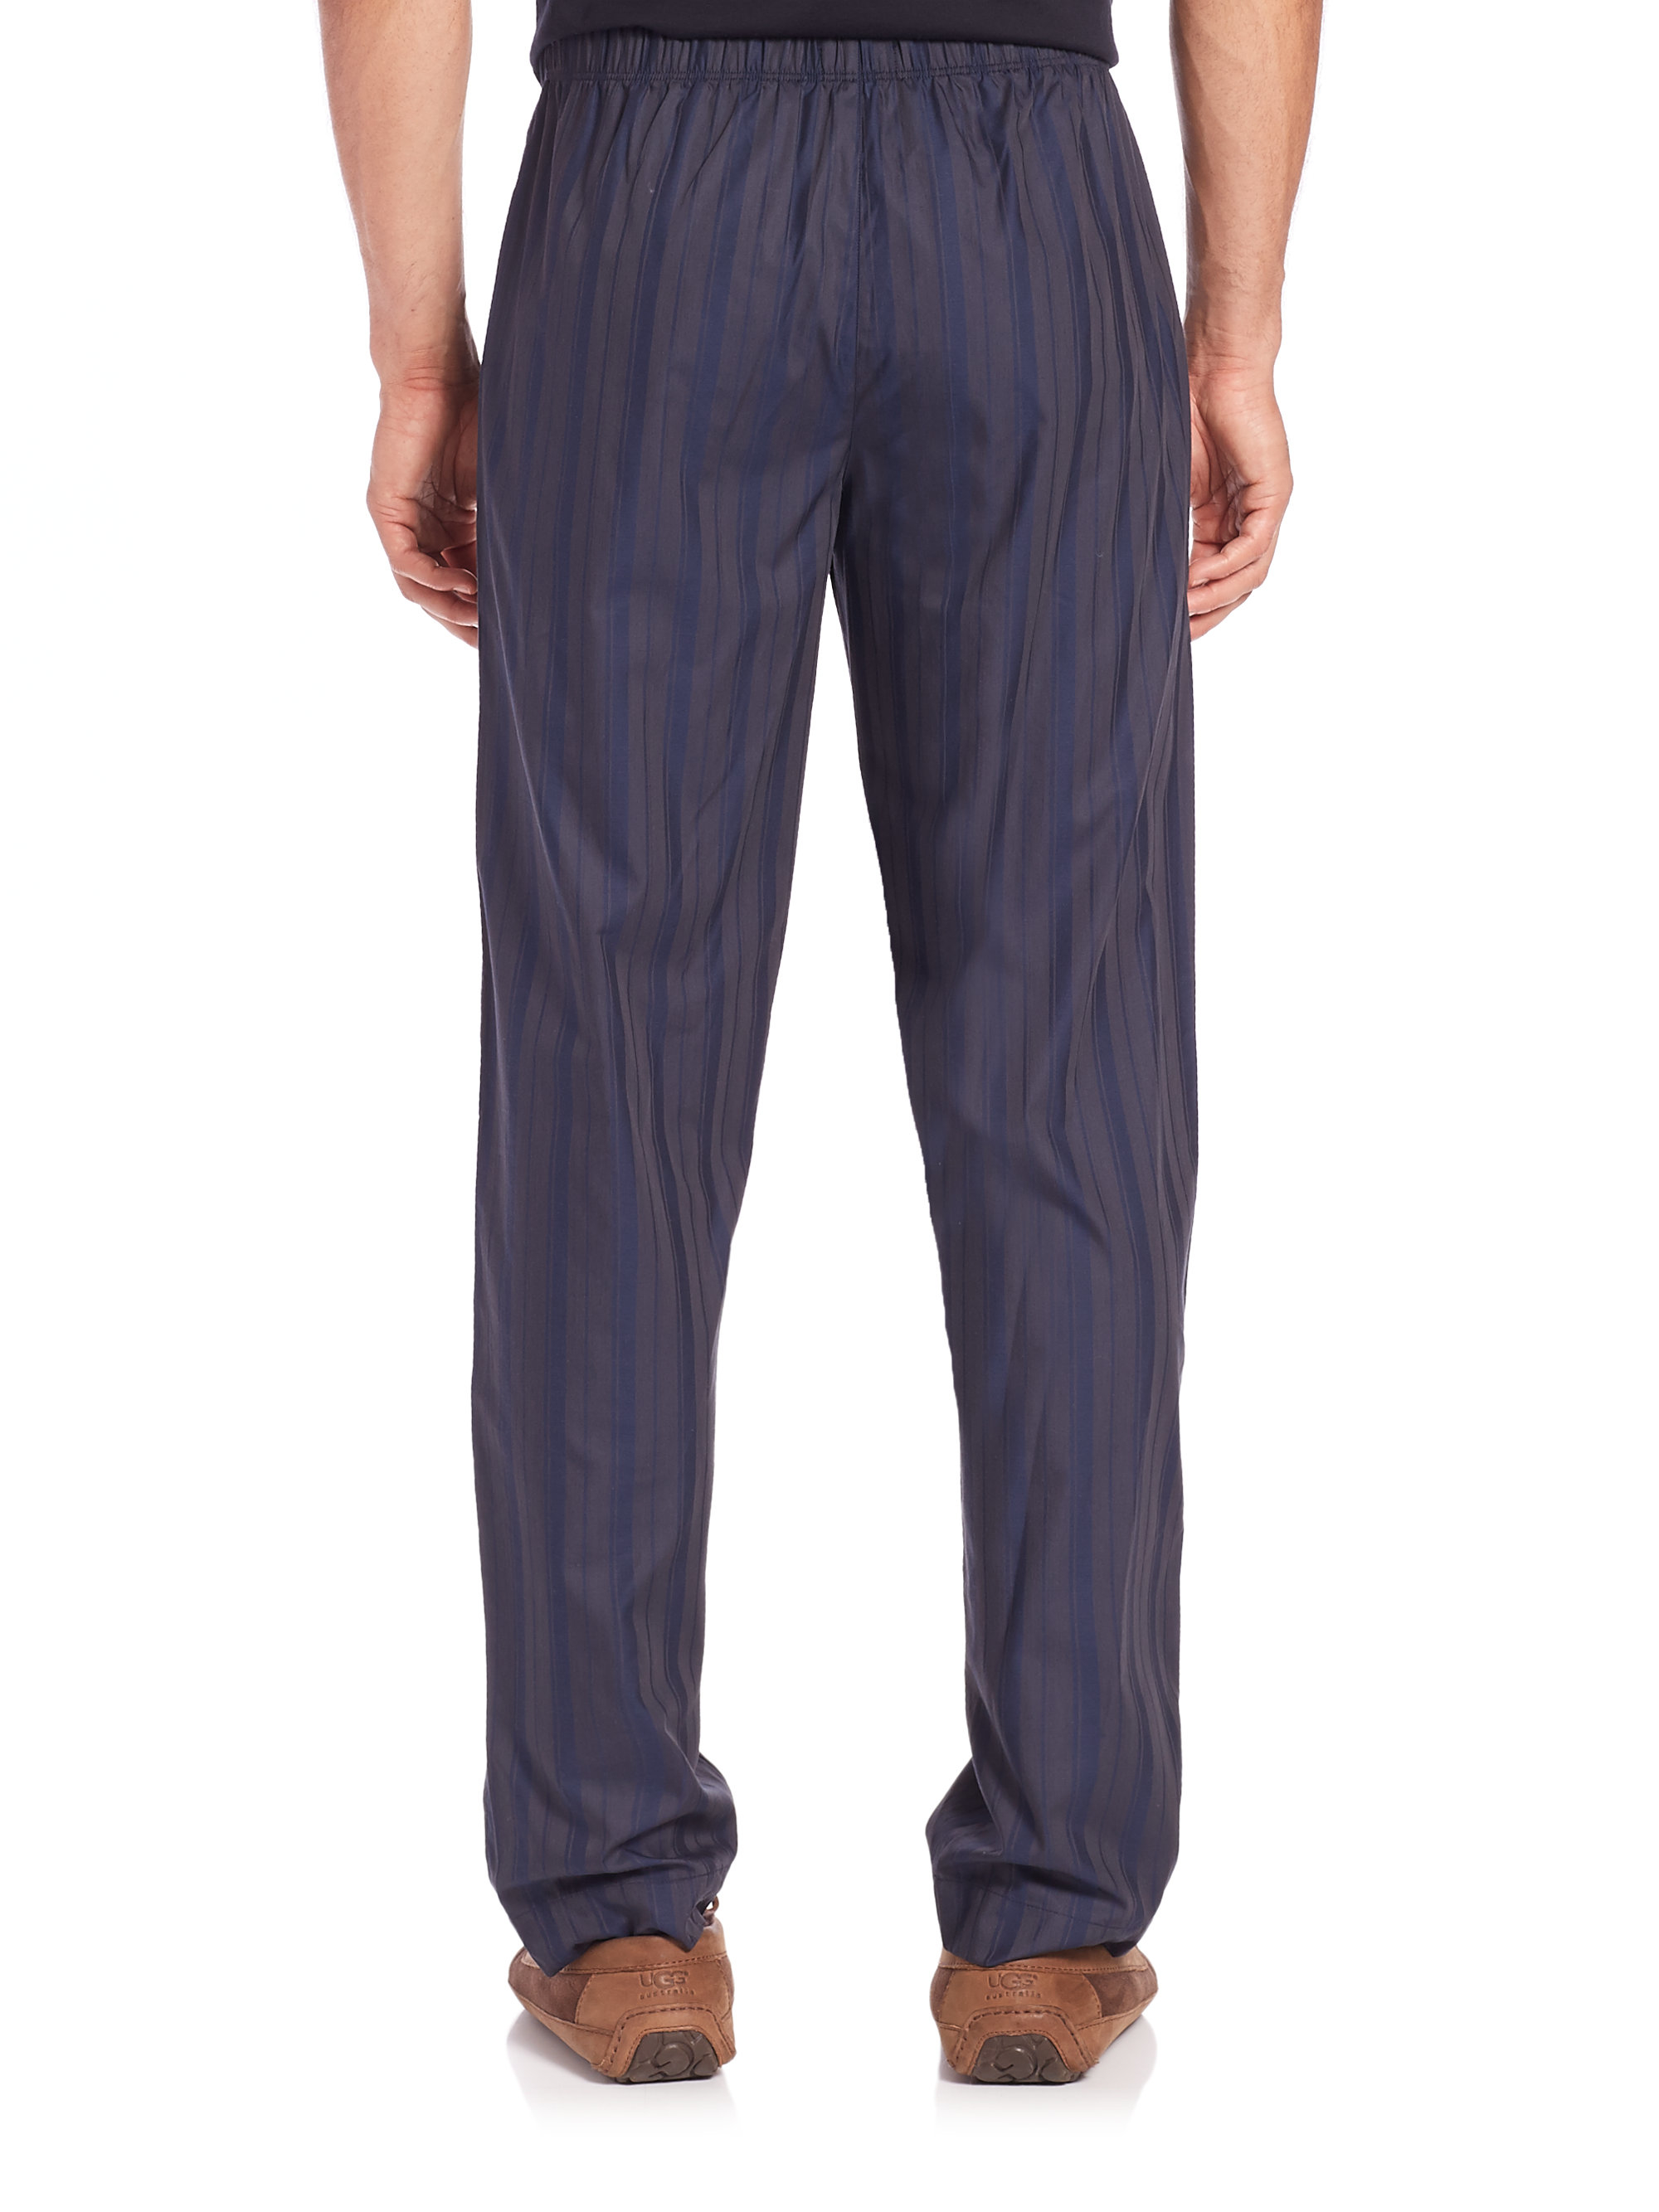 Lyst - Hanro Striped Cotton Lounge Pants In Blue For Men